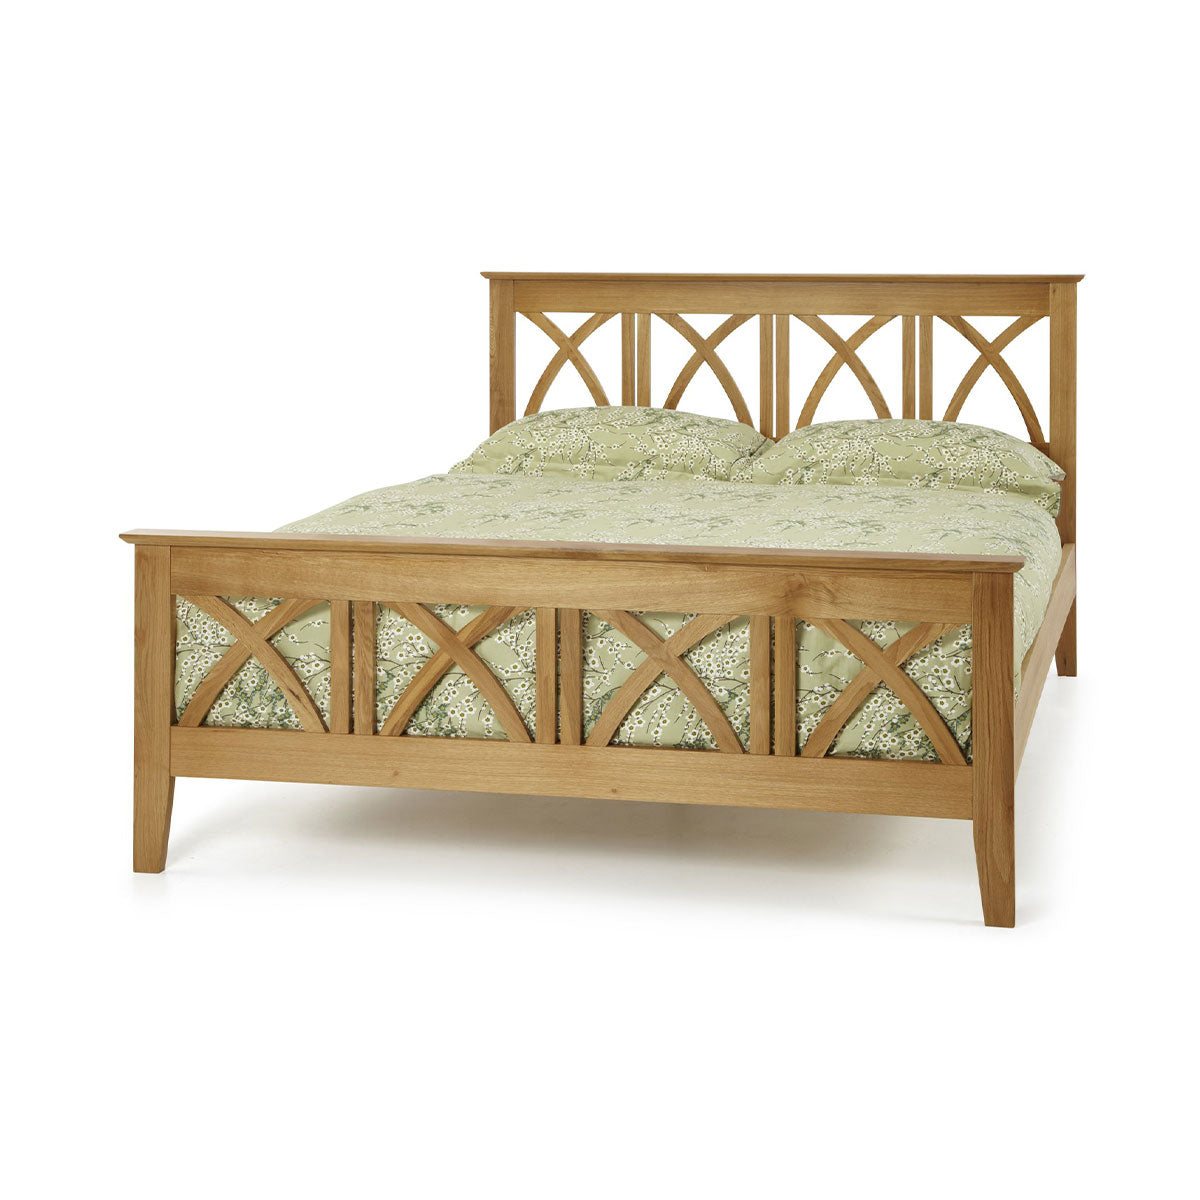 Maiden Solid Oak Bed Double King Size And Super King Size